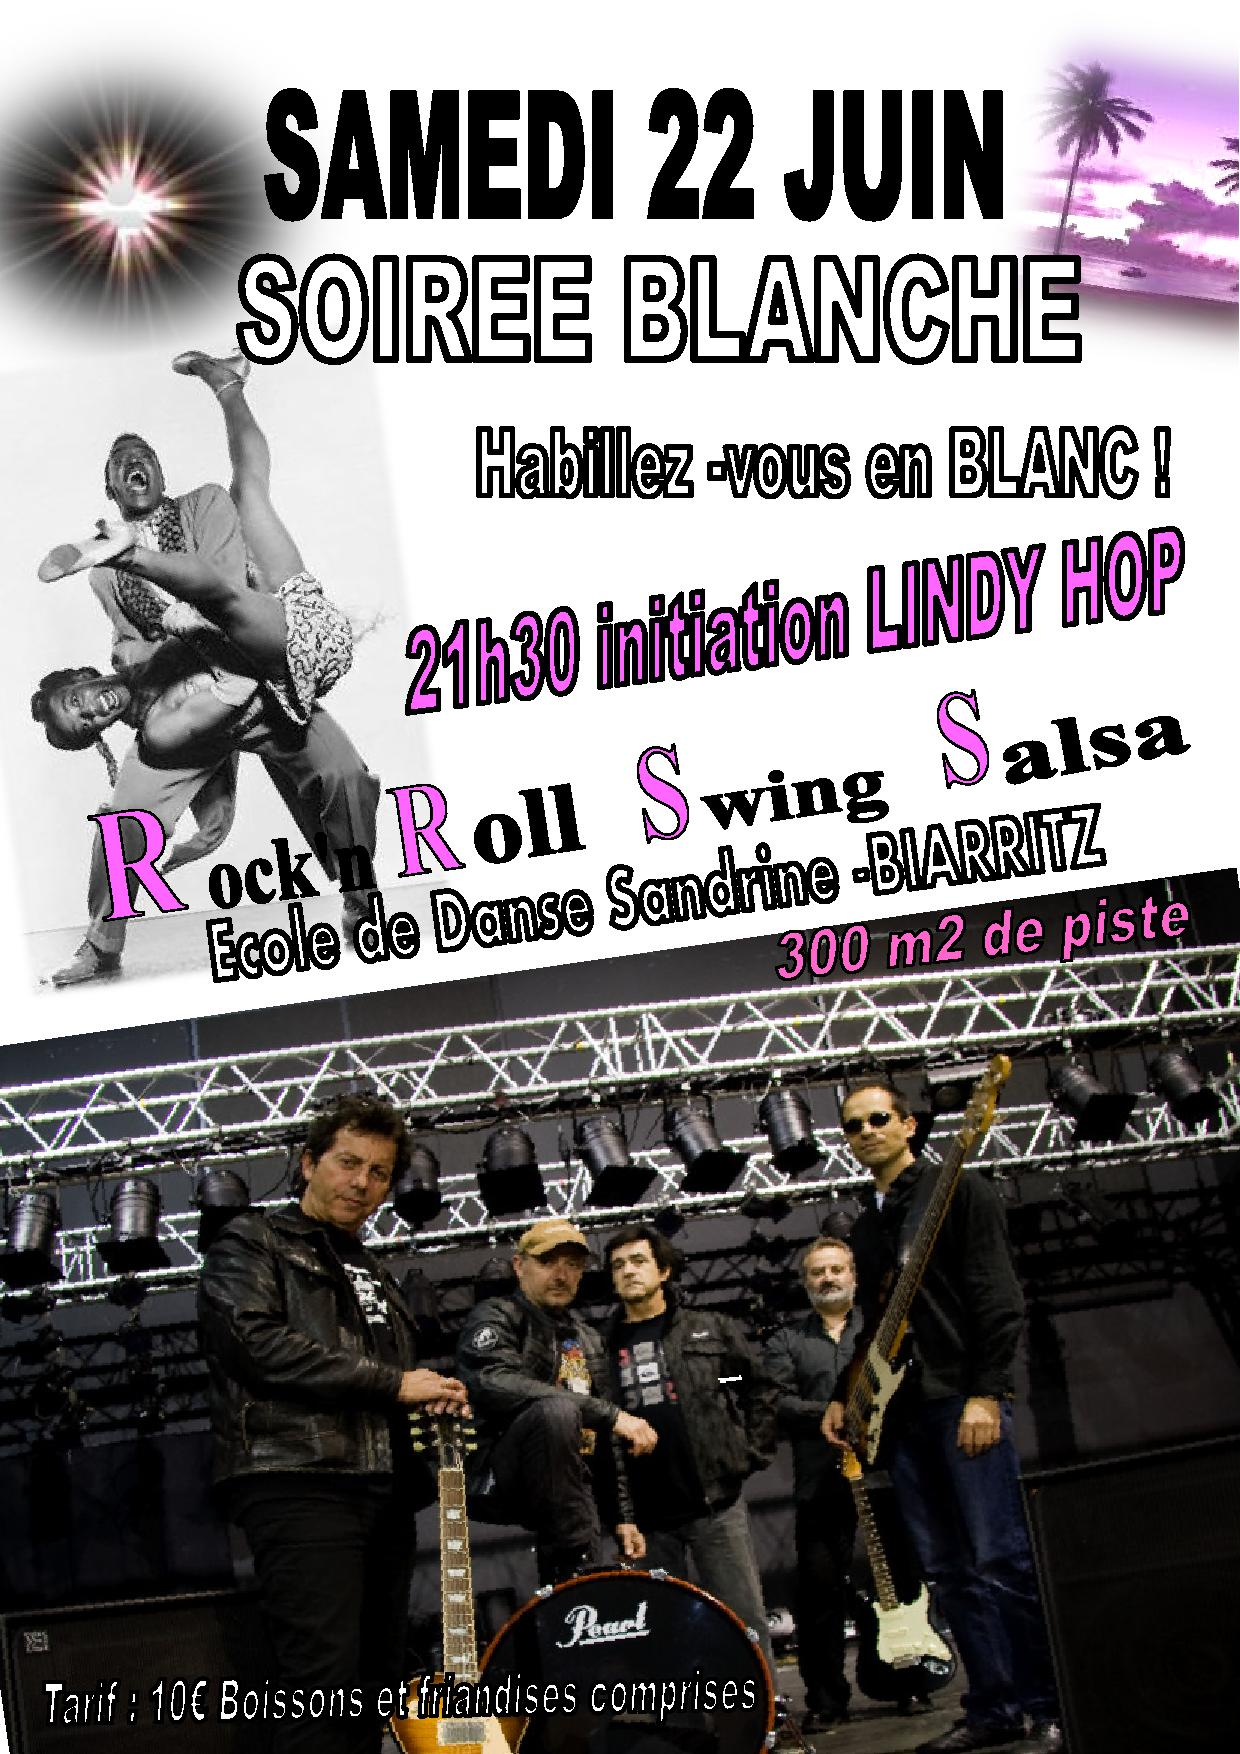 Soirée Blanche avec THE STAMPERS - ROCK / SWING avec  - initiation LINDY